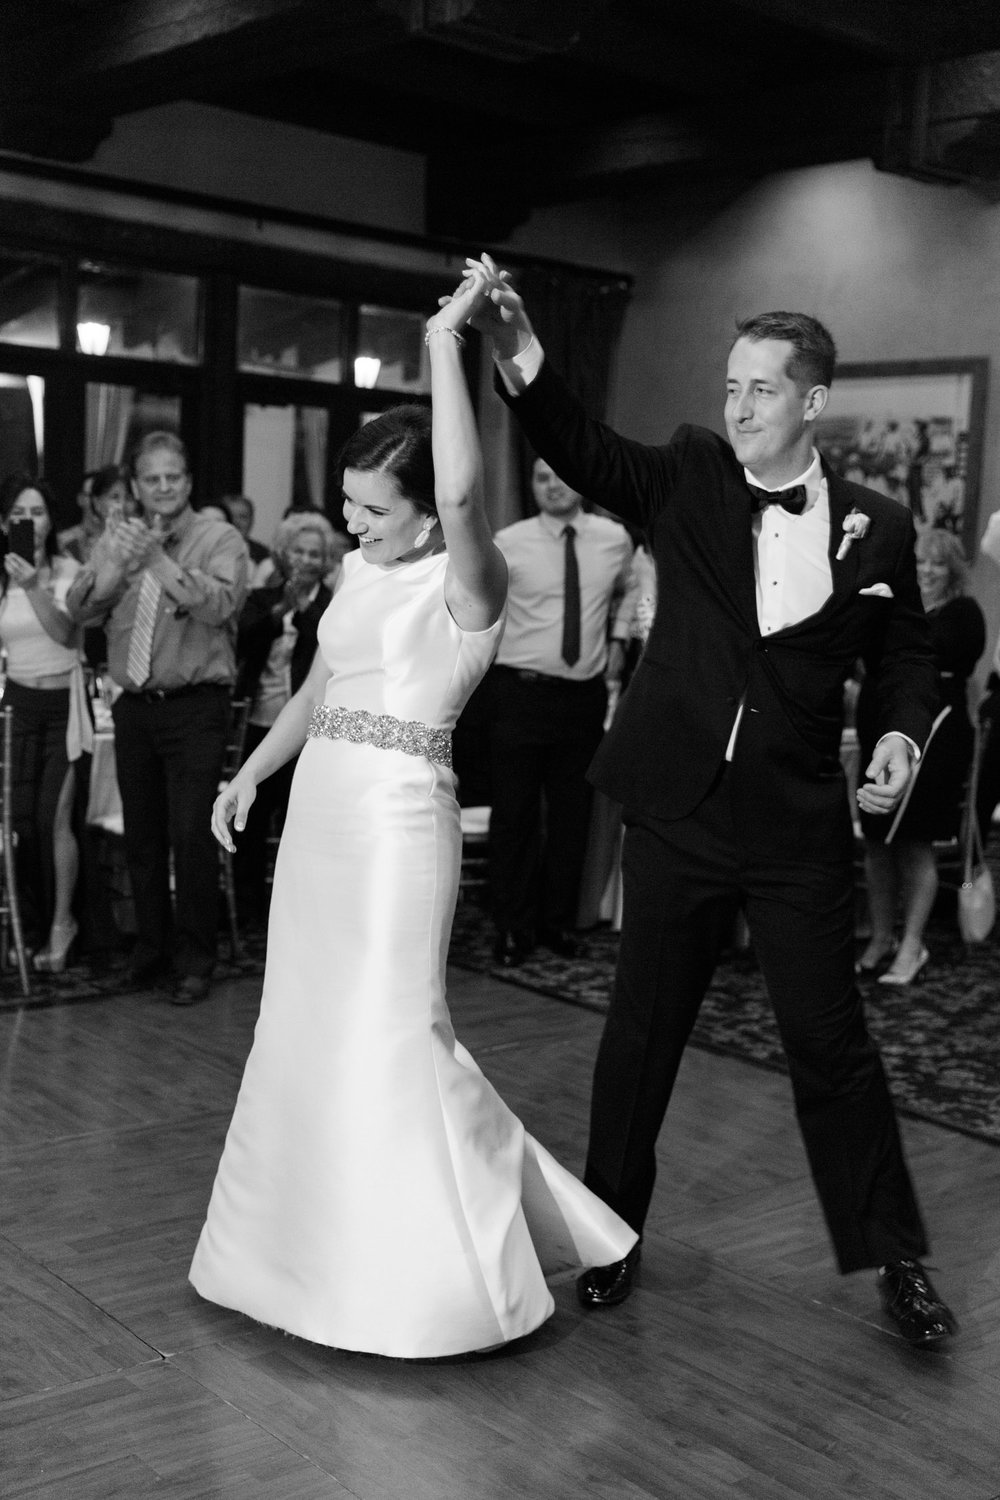 Groom spinning bride on the dancefloor during their first dance